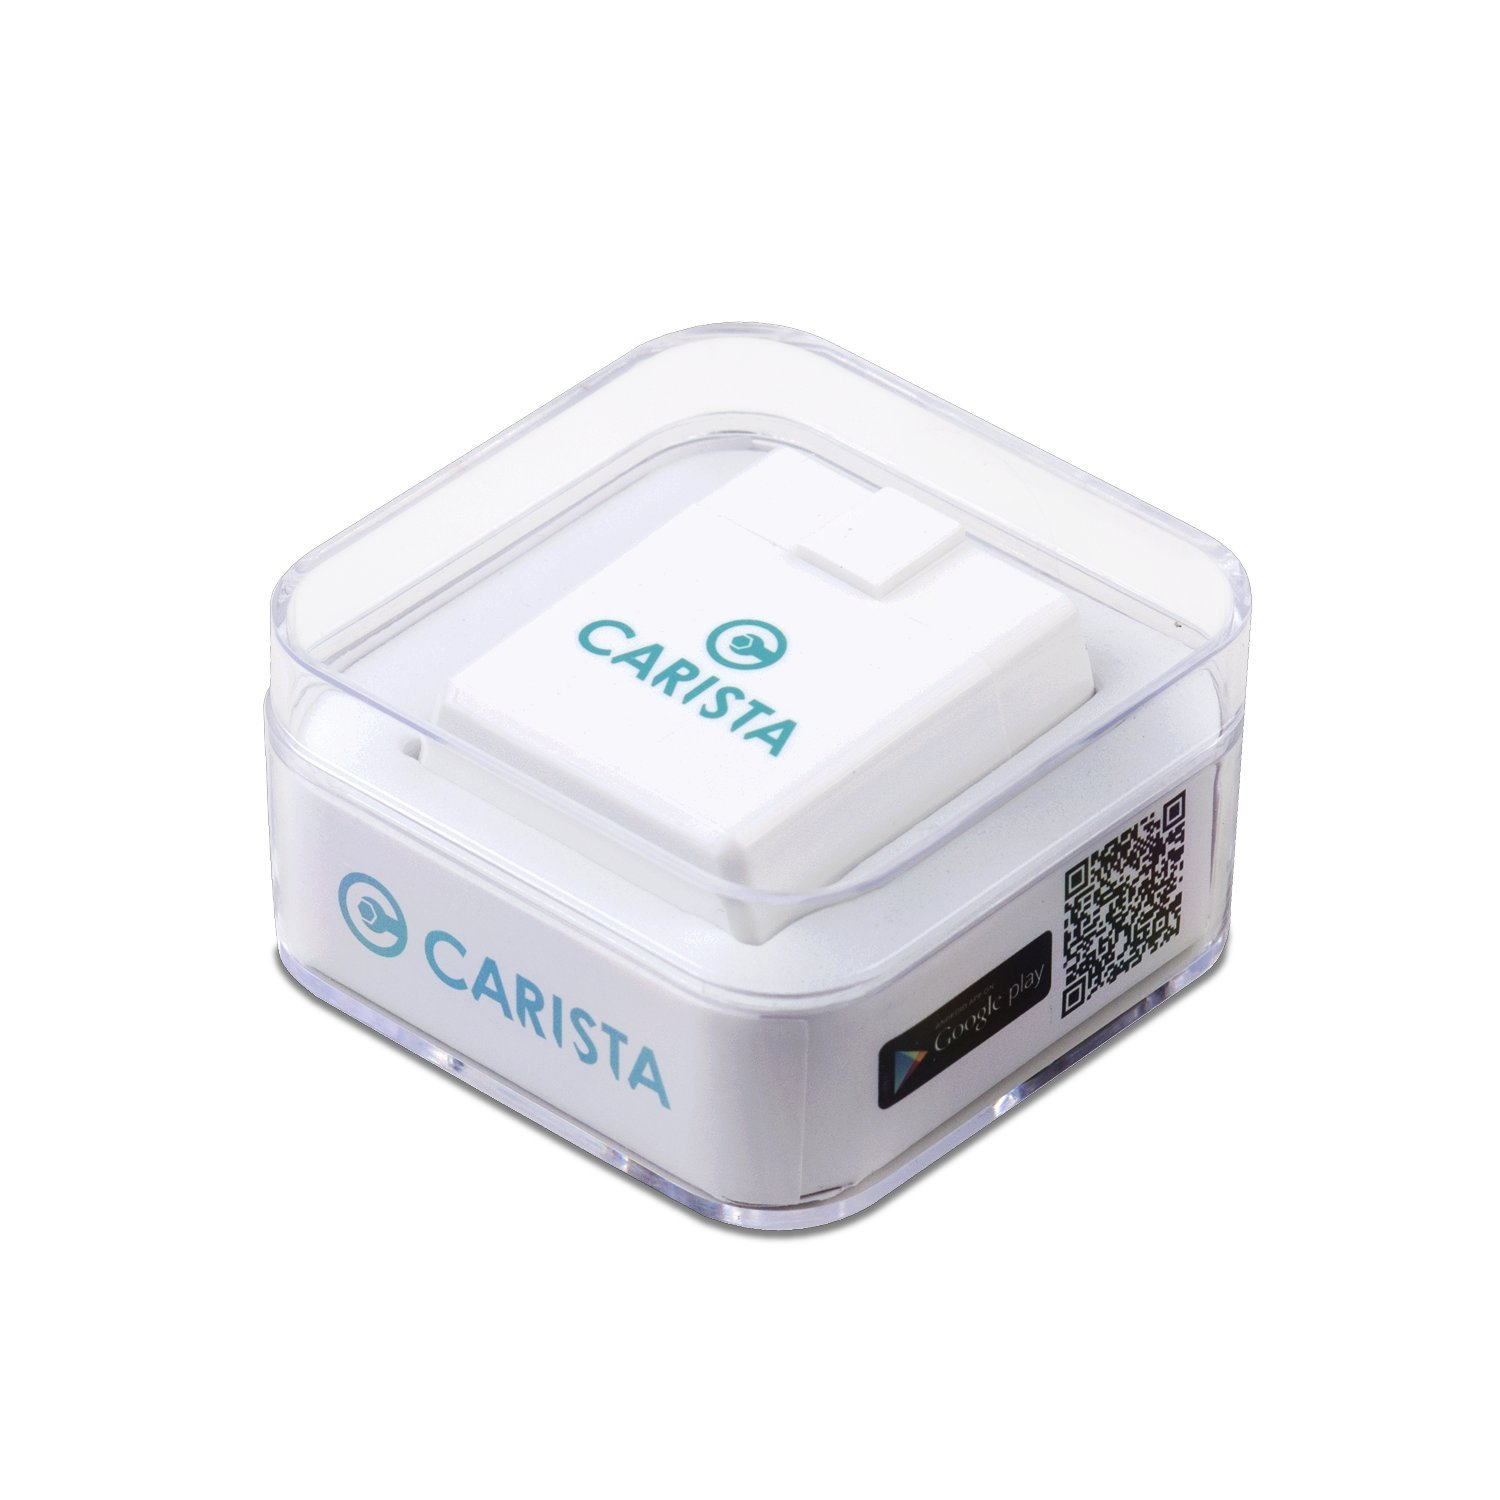 Carista OBD2 Bluetooth Adapter and App: Diagnose, Customize and Service Your Audi, BMW, Lexus, Mini, Scion, Toyota or VW with Dealer Level Technology